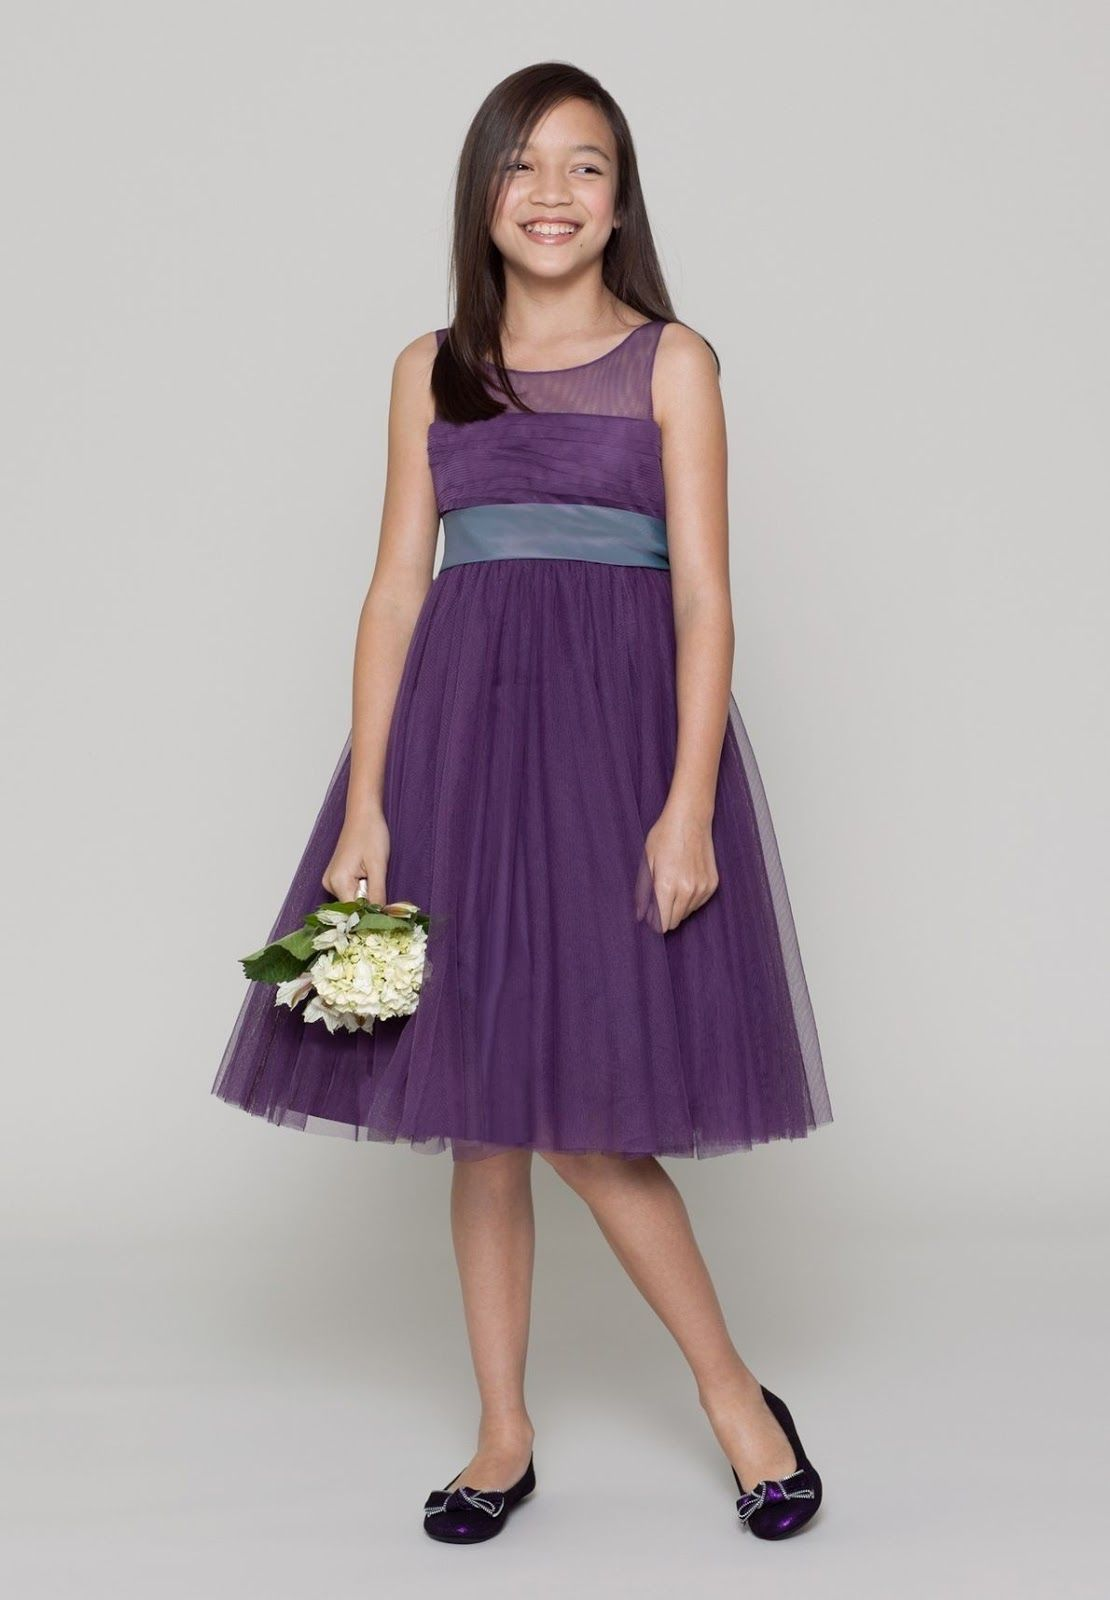 junior bridesmaid dresses | WhiteAzalea Junior Dresses: New Arrivals ...